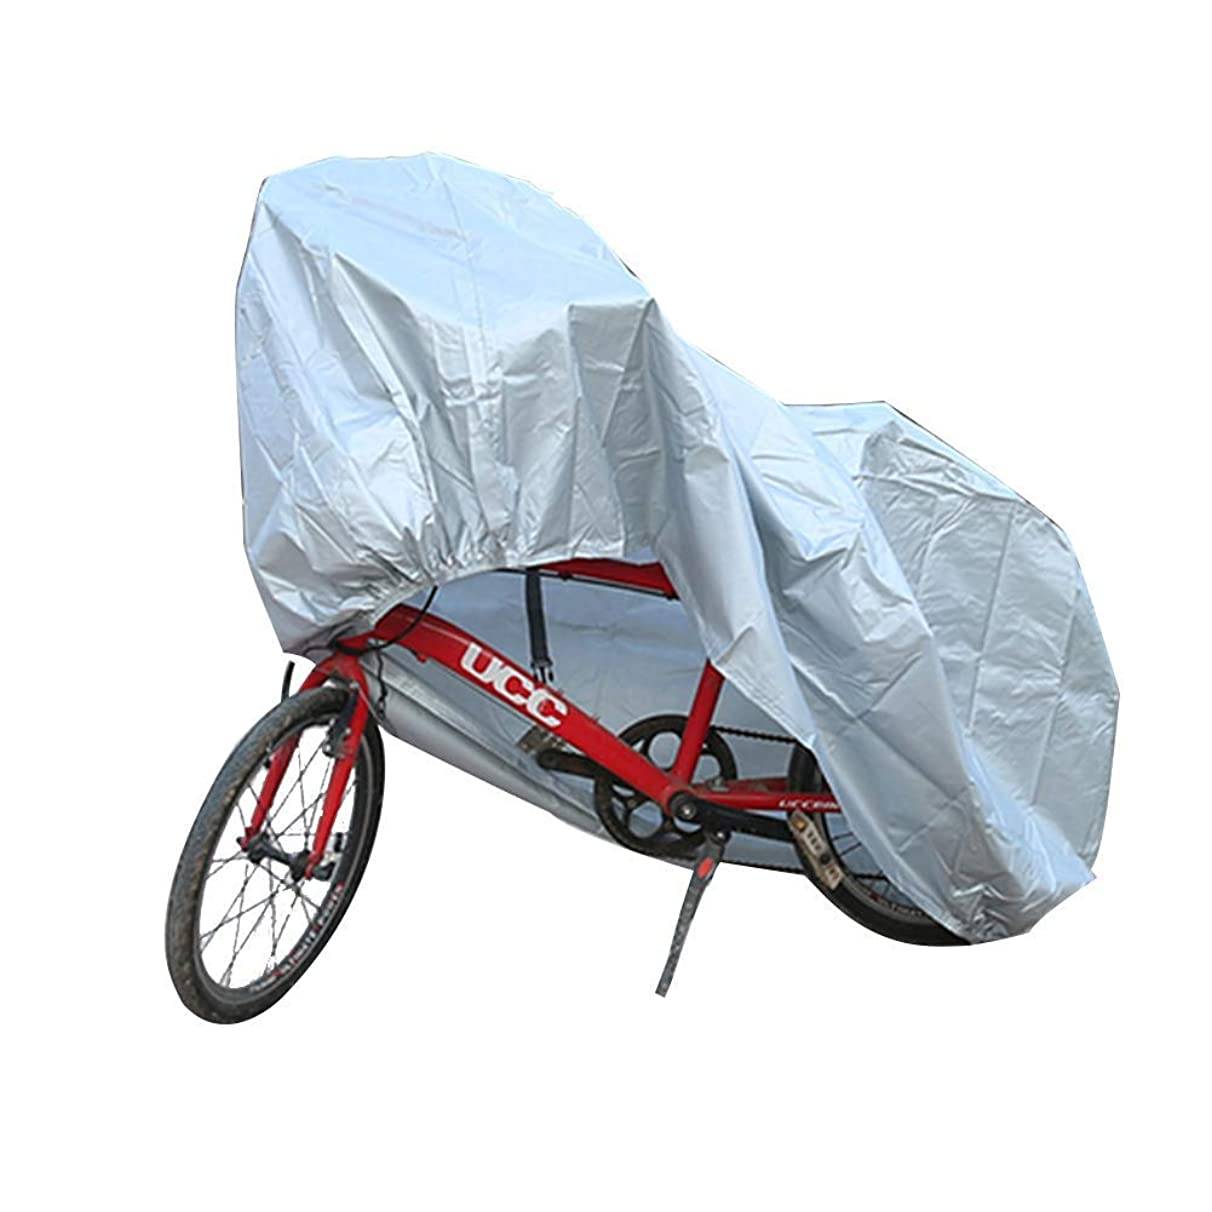 Waterproof Bike Cover Shade Net/Sunscreen Tarpaulin,Antirust Dust-Proof Avoid Inclement Weather Easy to Store,Multiple Sizes Available, WenMing Yue, Silver, m